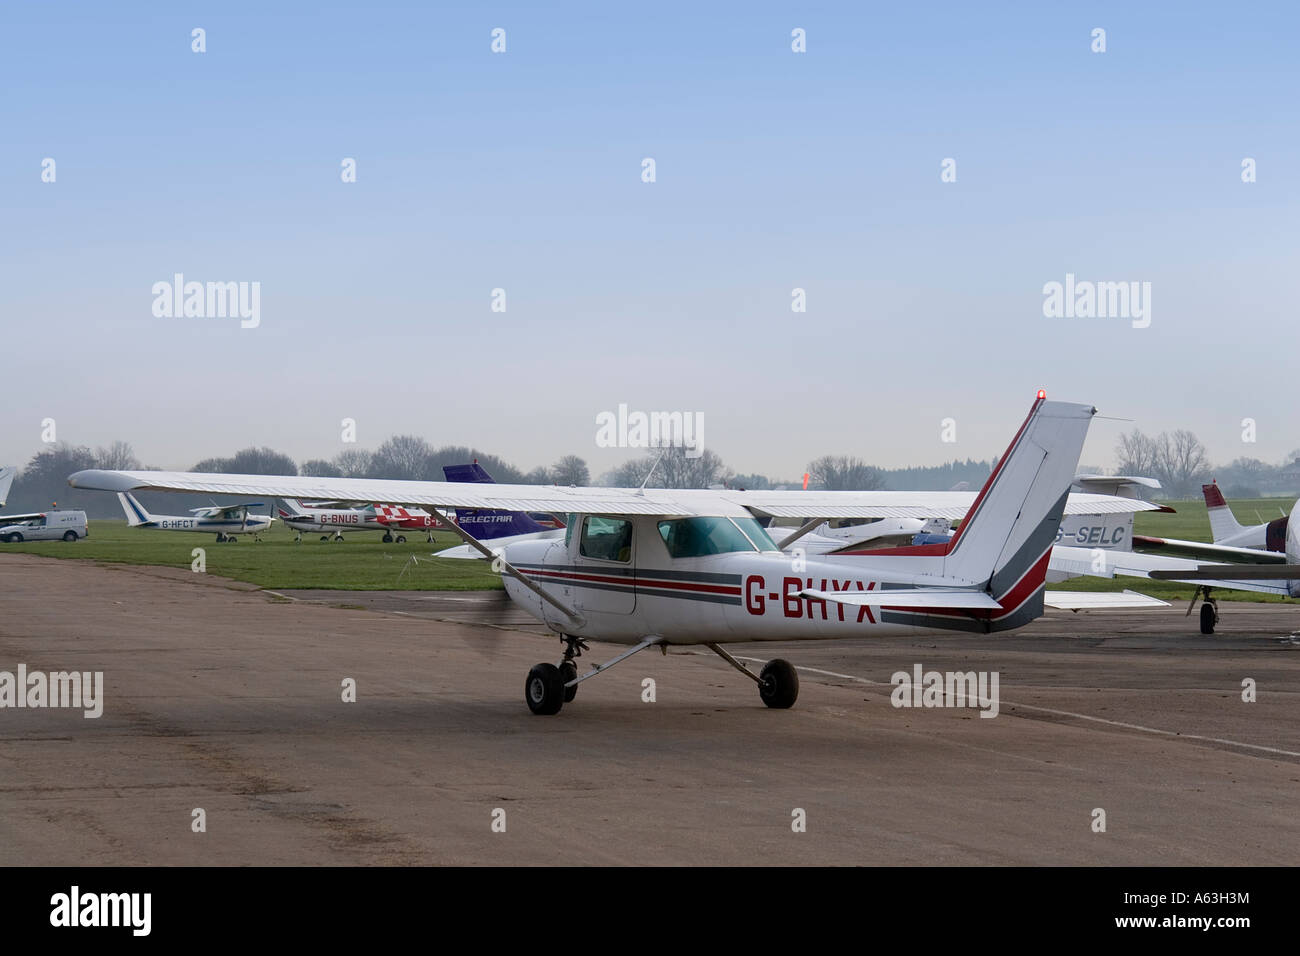 Cessna 152 private aircraft taxiing at Stapleford airfield in Essex England UK - Stock Image